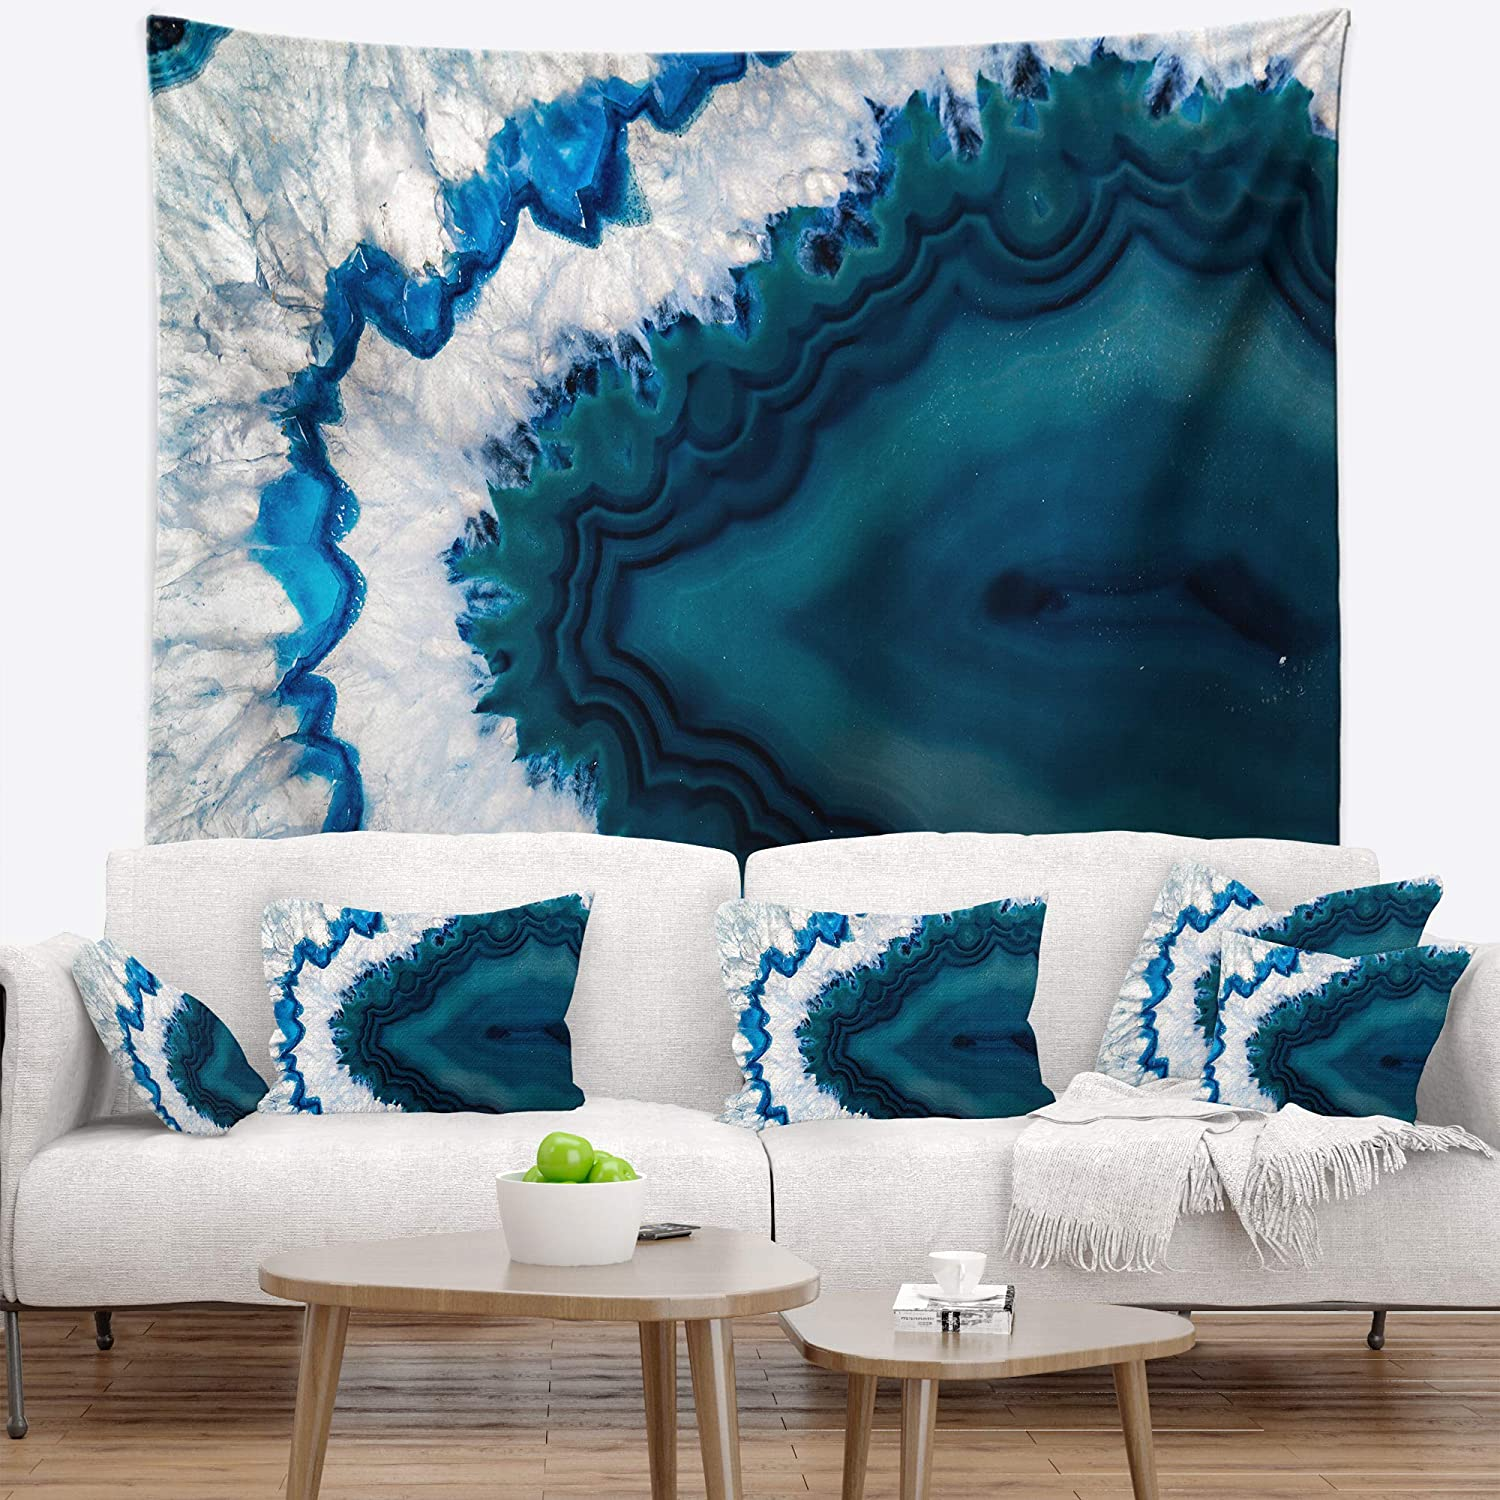 Designart TAP143773932 'bluee Brazilian Geode' Abstract Tapestry Blanket Décor Wall Art for Home and Office, Medium  39 . x 32 , Created on Lightweight Polyester Fabric